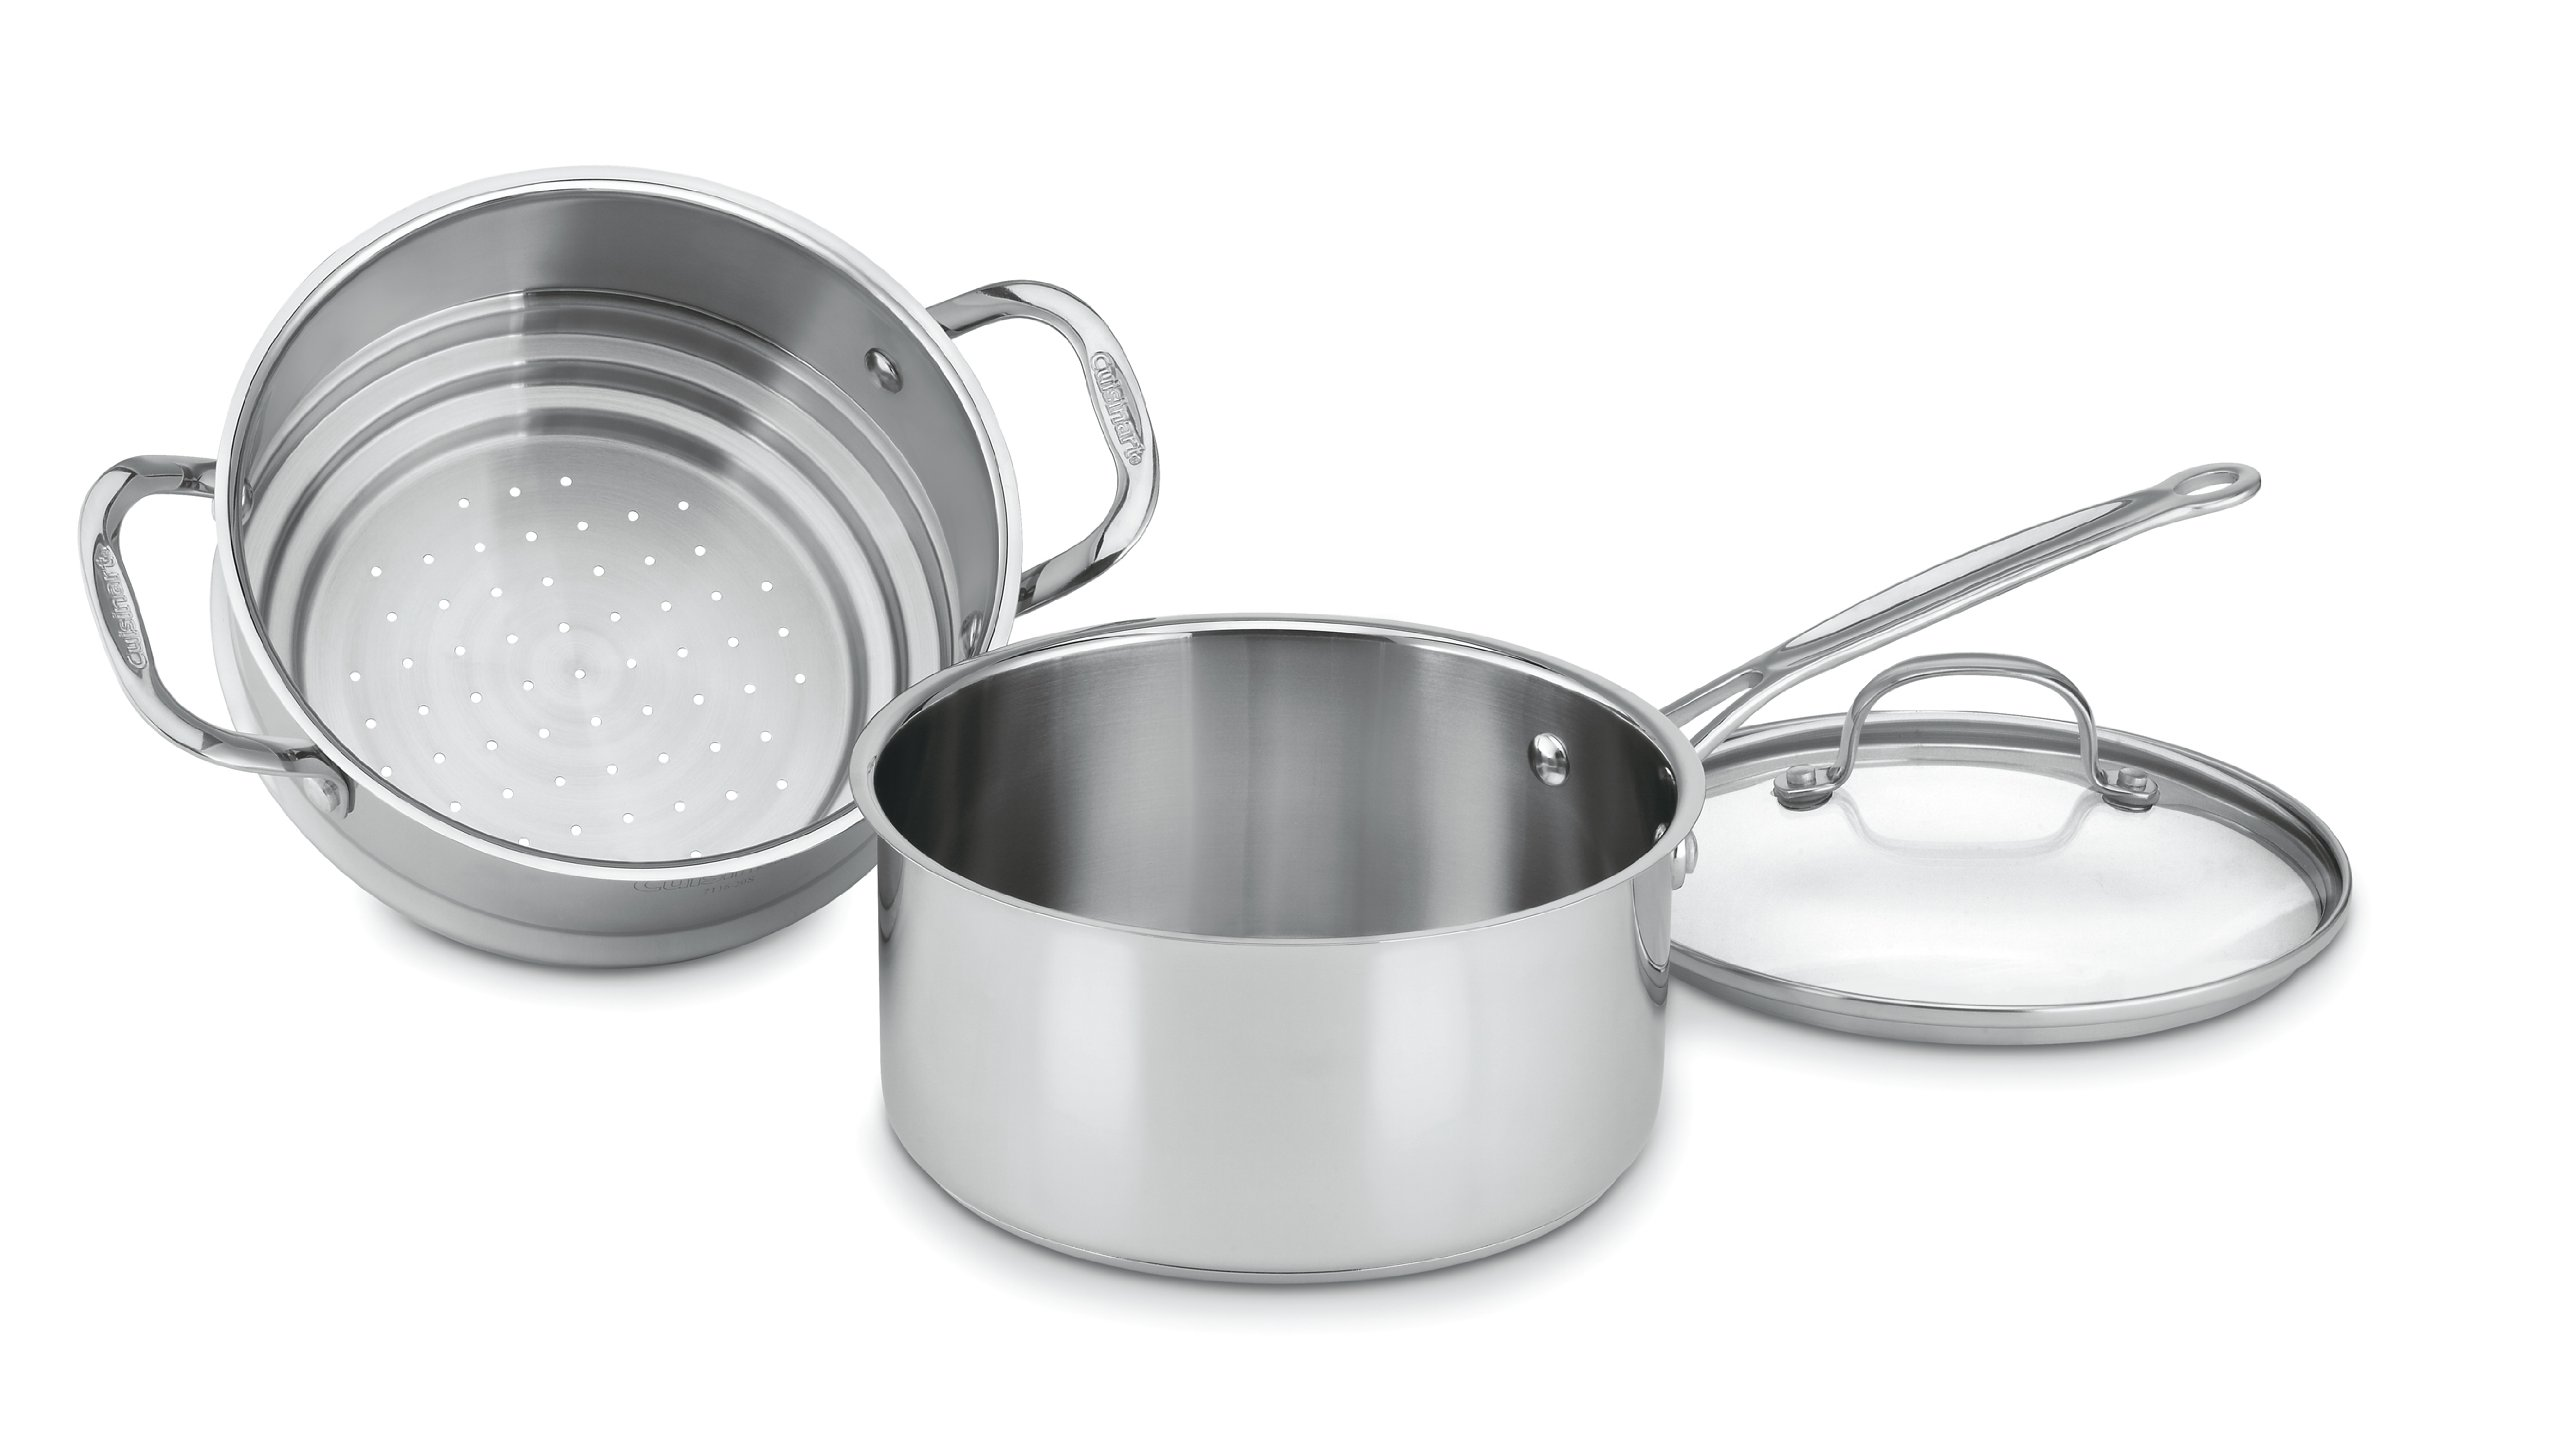 Cuisinart 77-35CG Chef's Classic Stainless 3-Piece 3-Quart Steamer Set